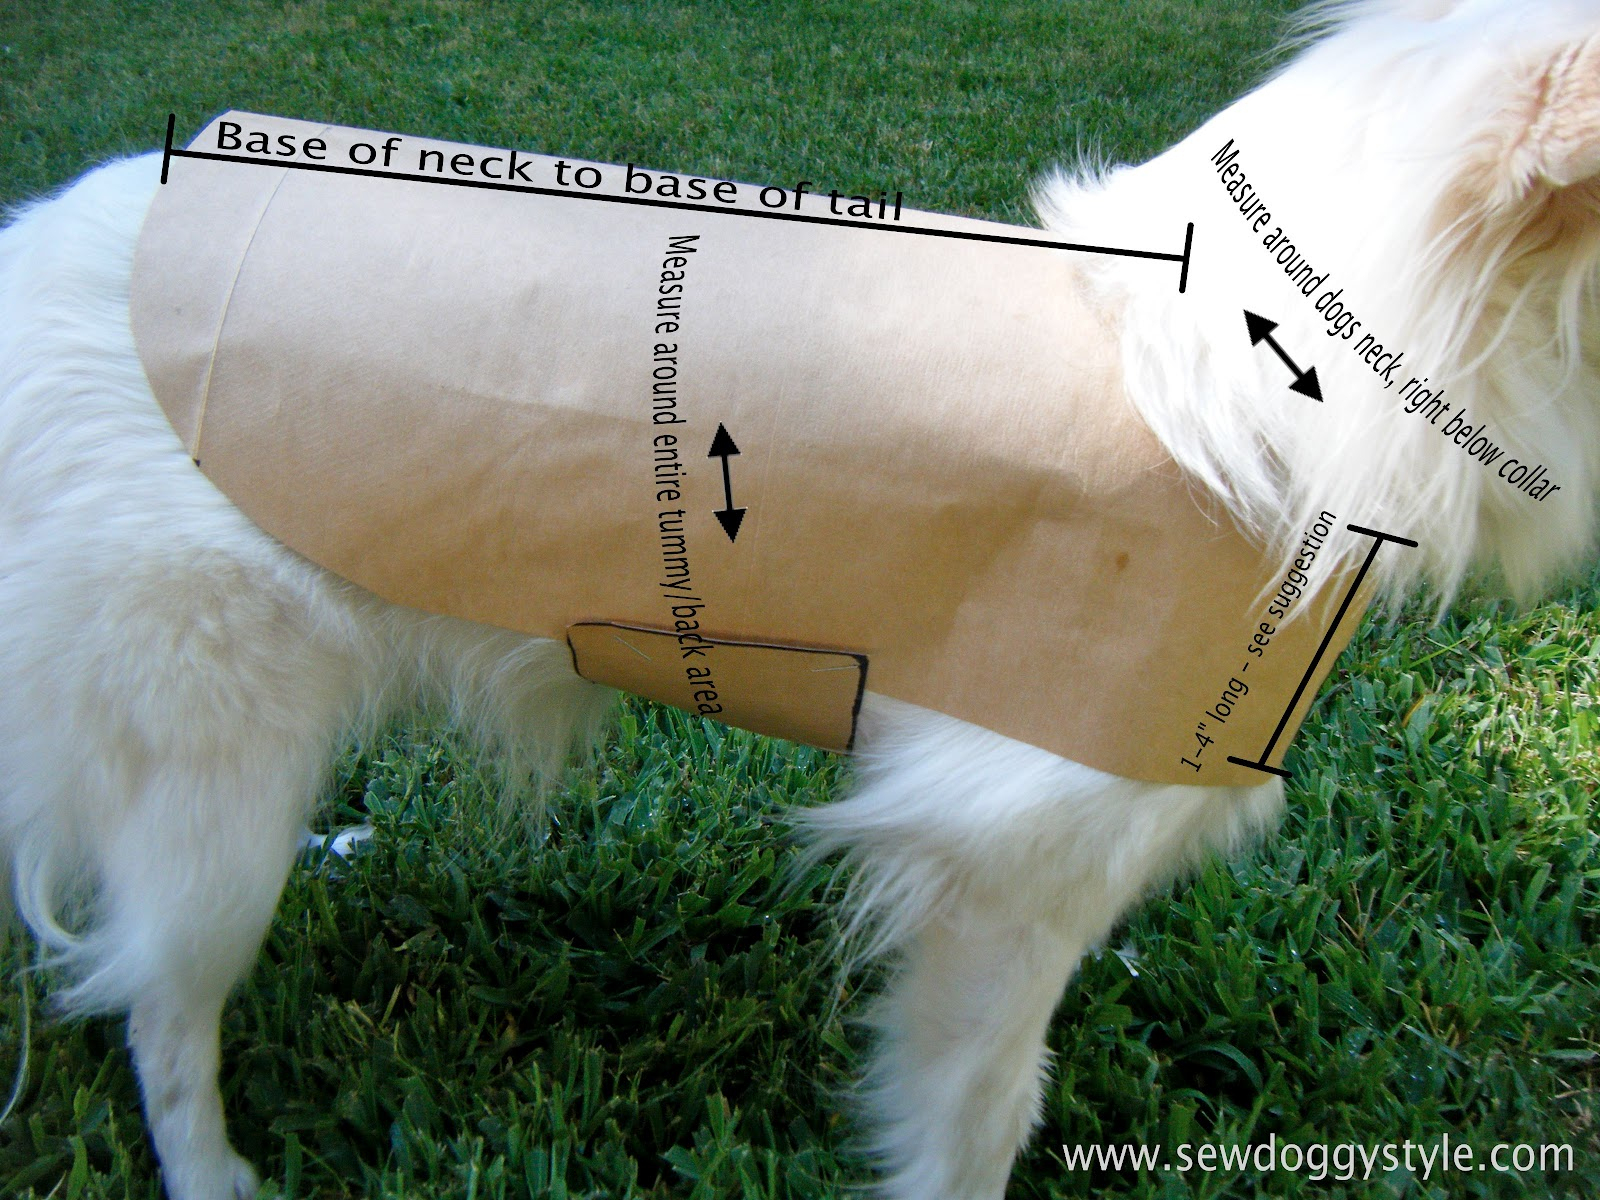 Sew Doggystyle: Diy Pet Coat Pattern - Free Printable Dog Coat Sewing Patterns